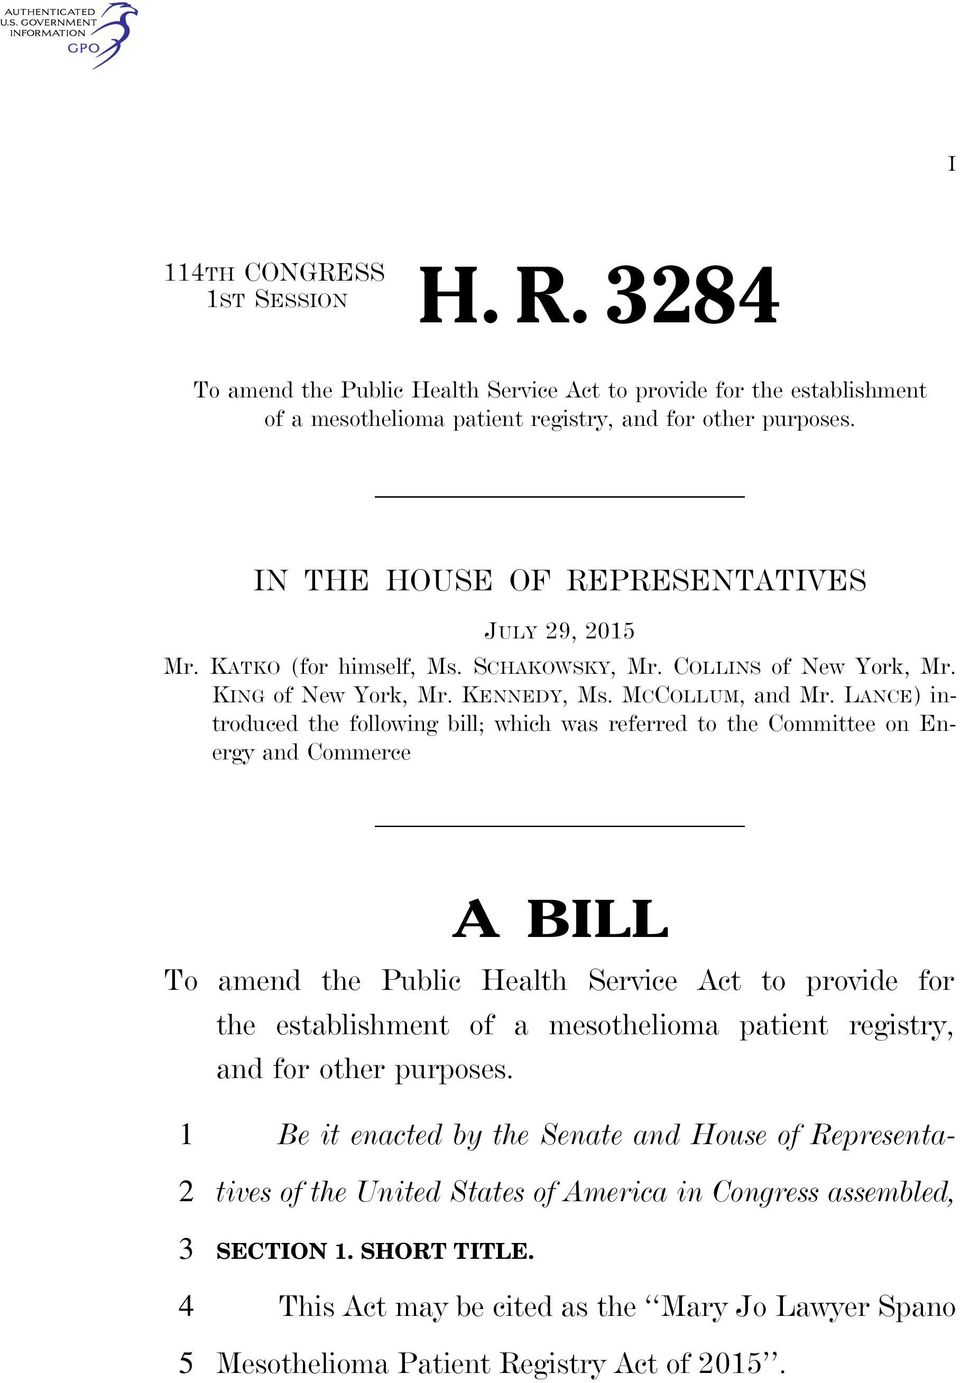 LANCE) introduced the following bill; which was referred to the Committee on Energy and Commerce A BILL To amend the Public Health Service Act to provide for the establishment of a mesothelioma